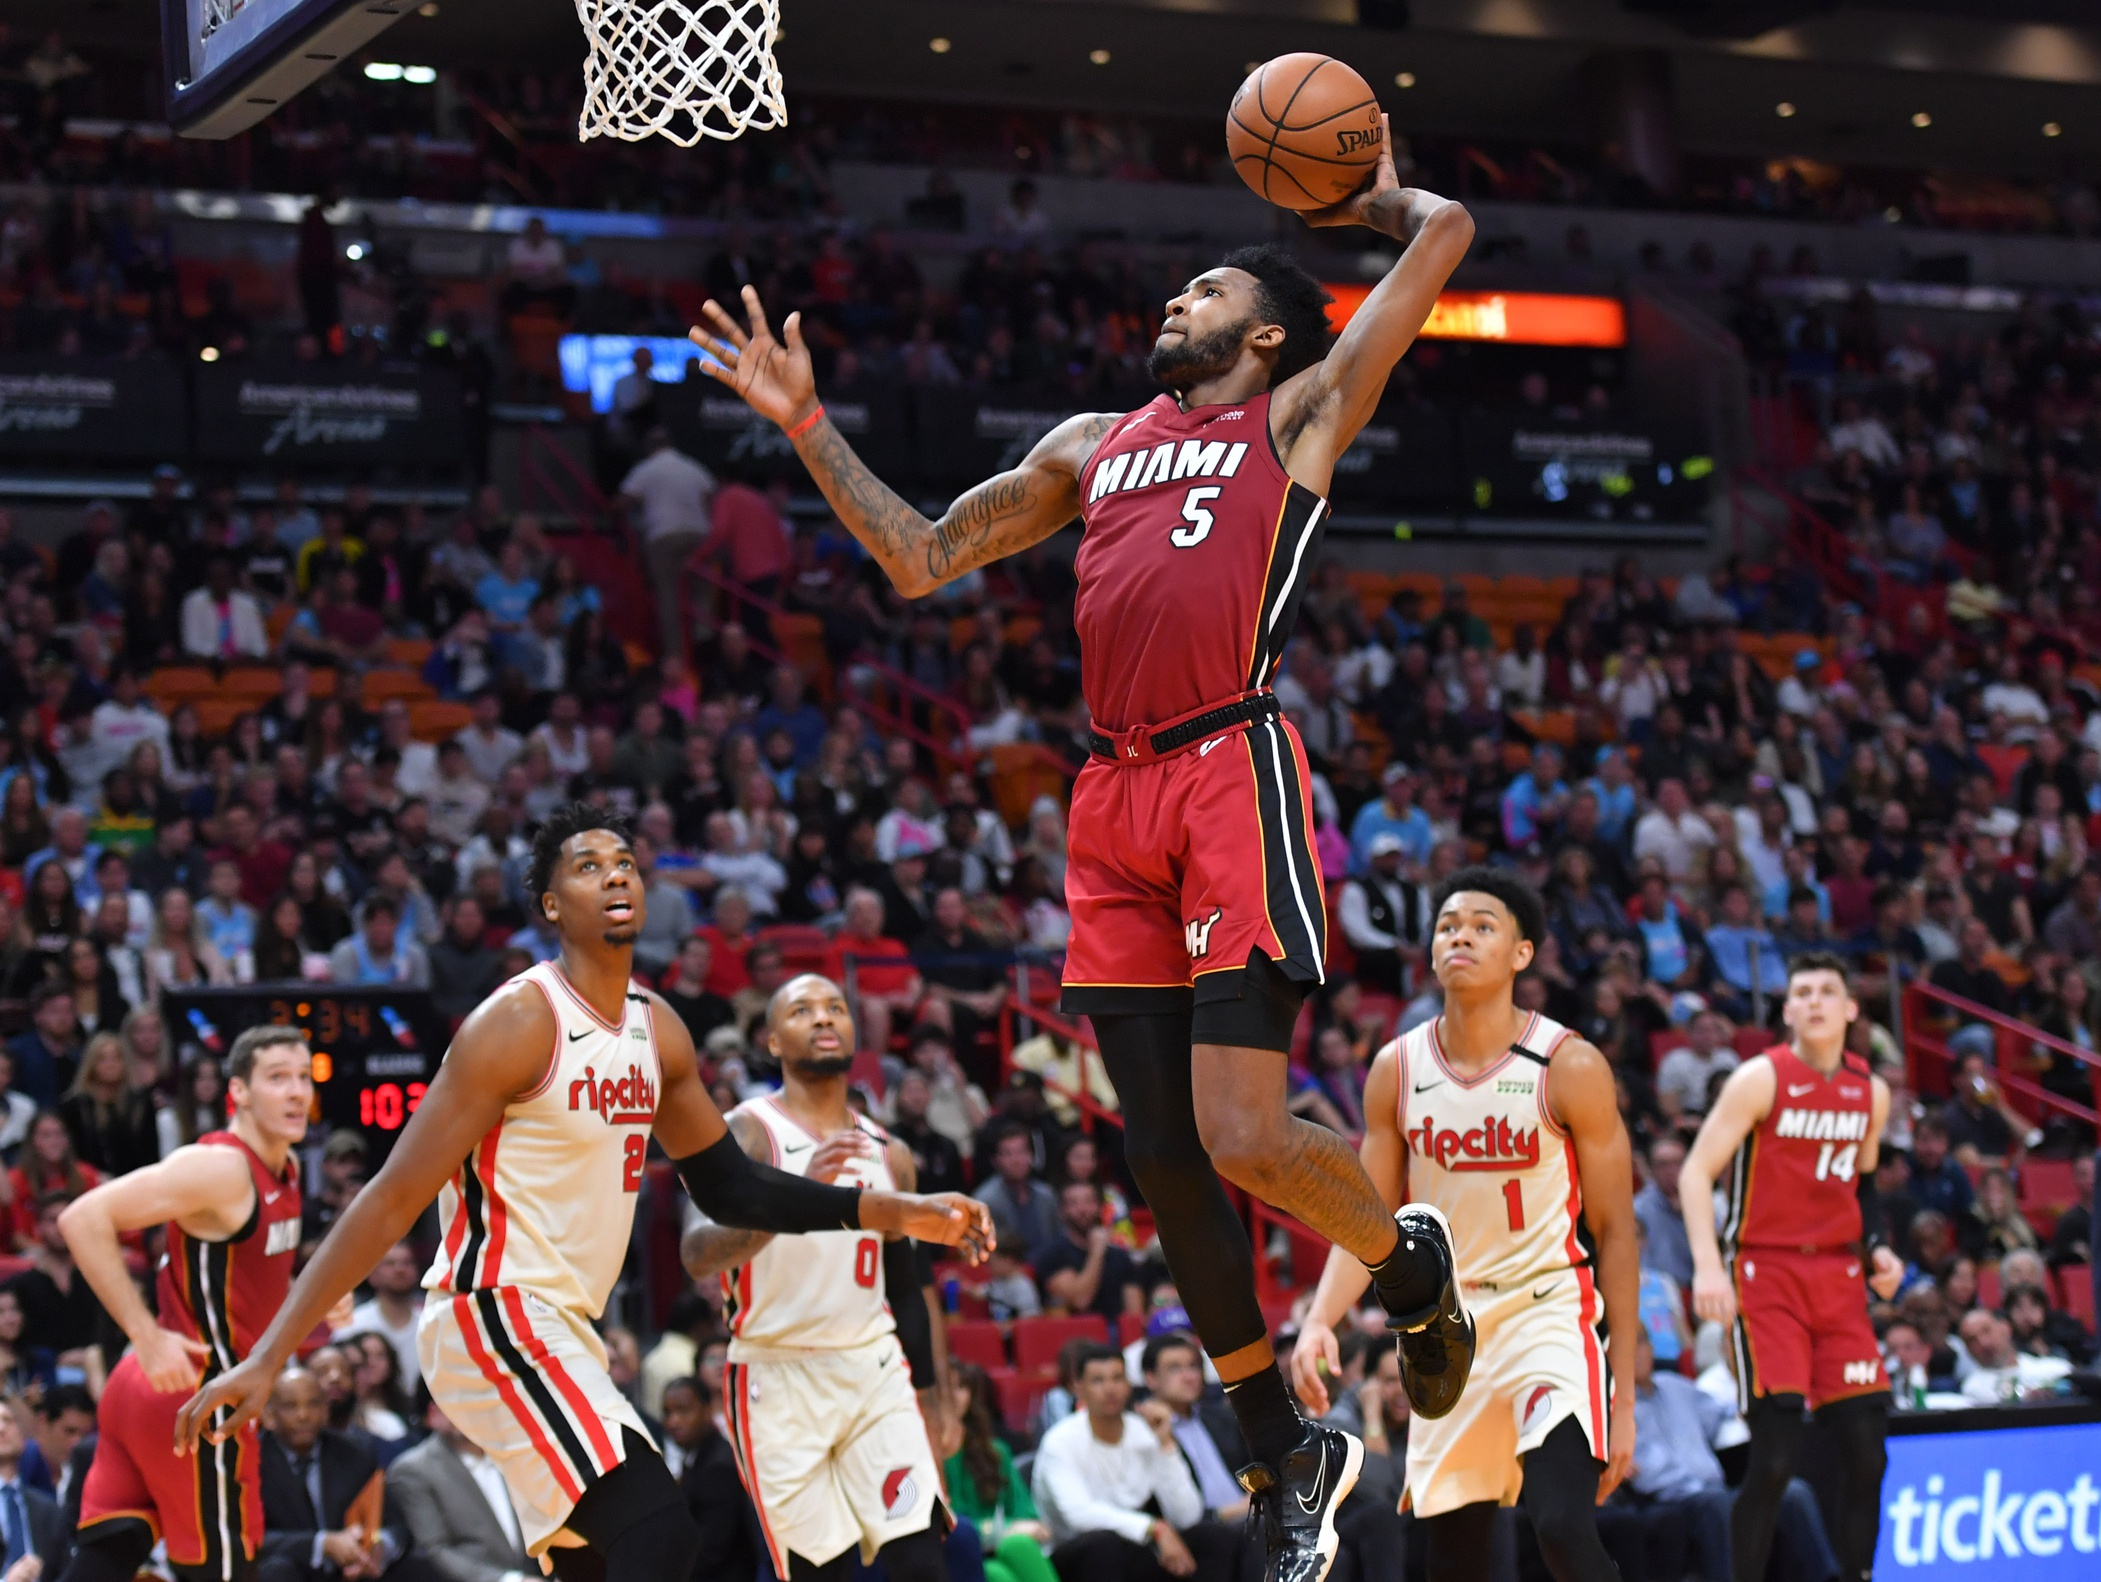 Heat forward Derrick Jones Jr. to participate in dunk contest at All-Star Weekend